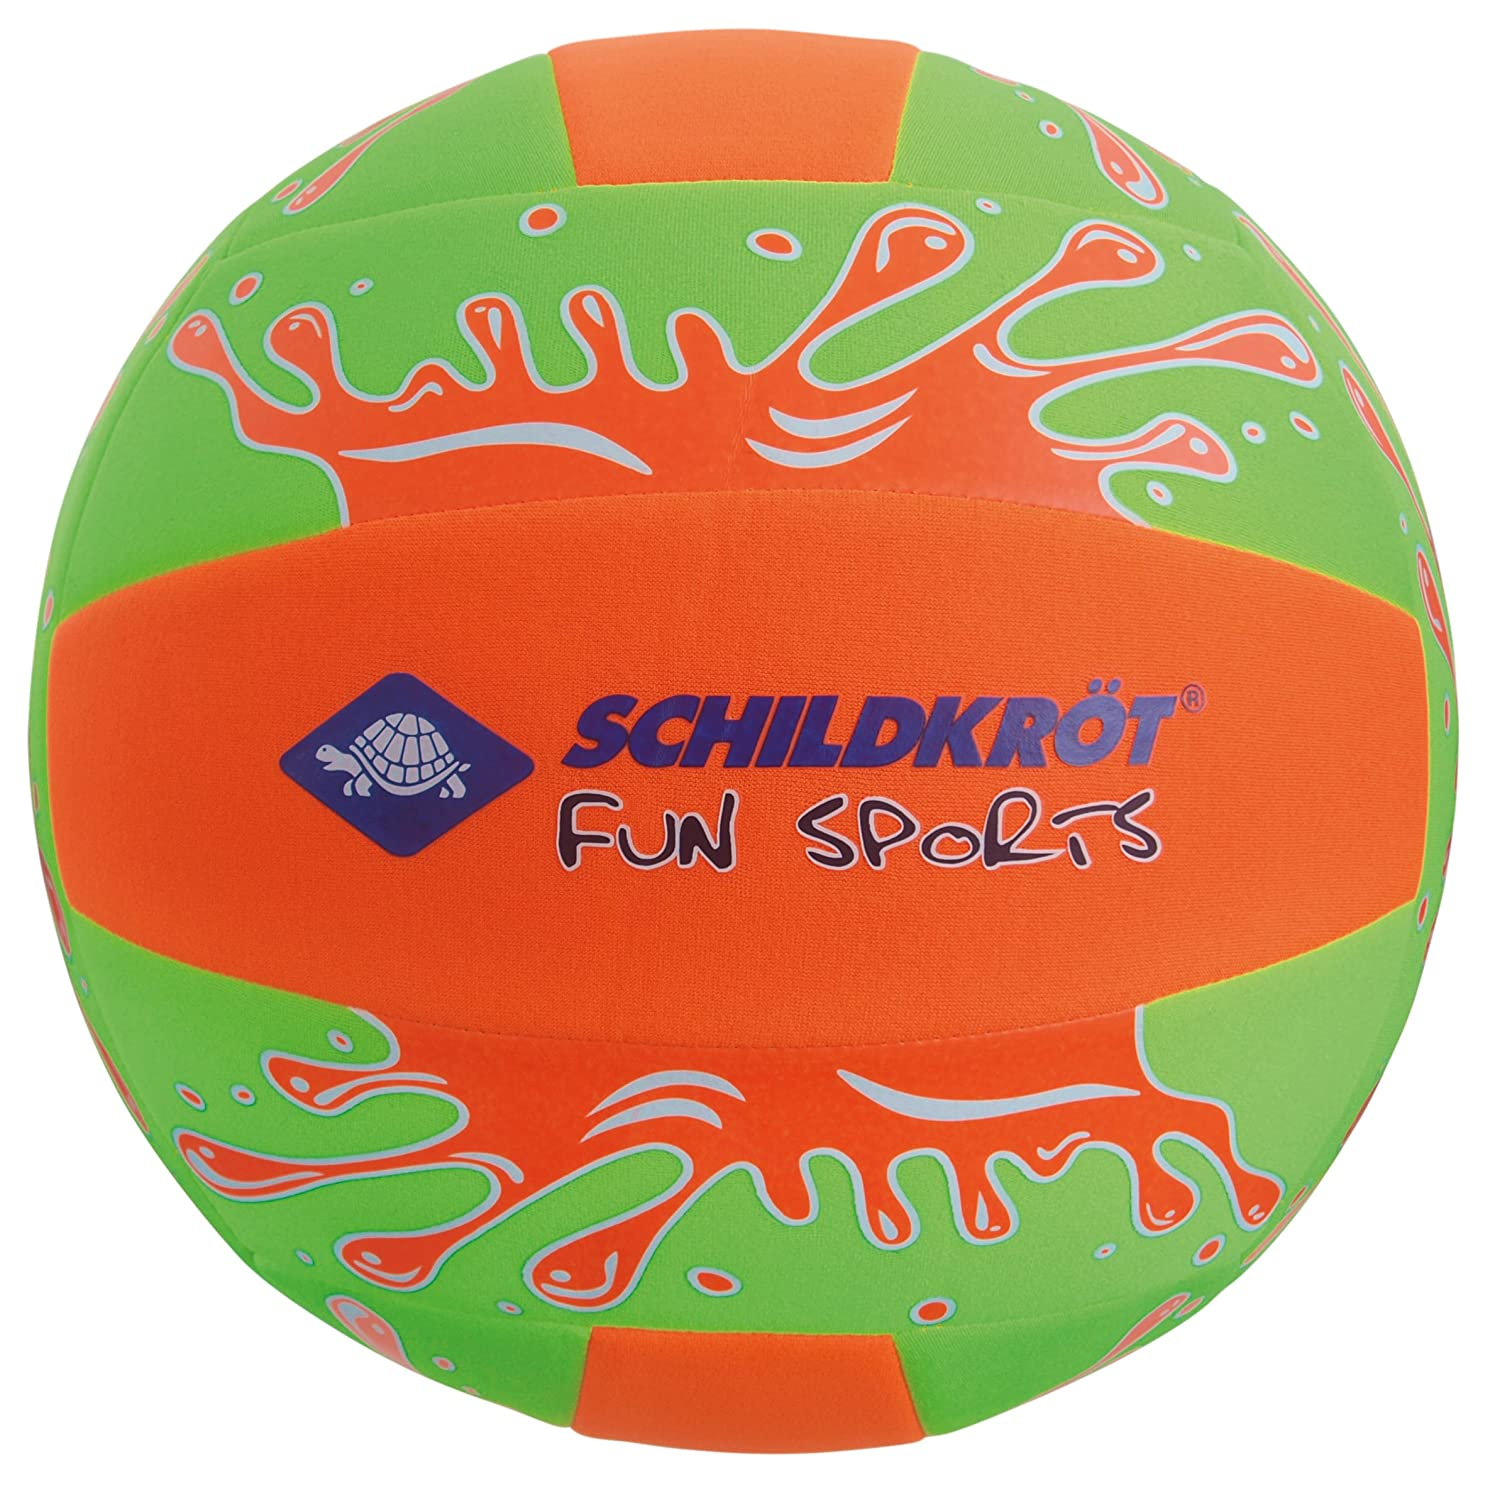 Schildkröt Funsports SCHILDKRÖT FUN SPORTS NEOPRENE Beach Ball XL, 35cm, neon- Grün/Orange 970189